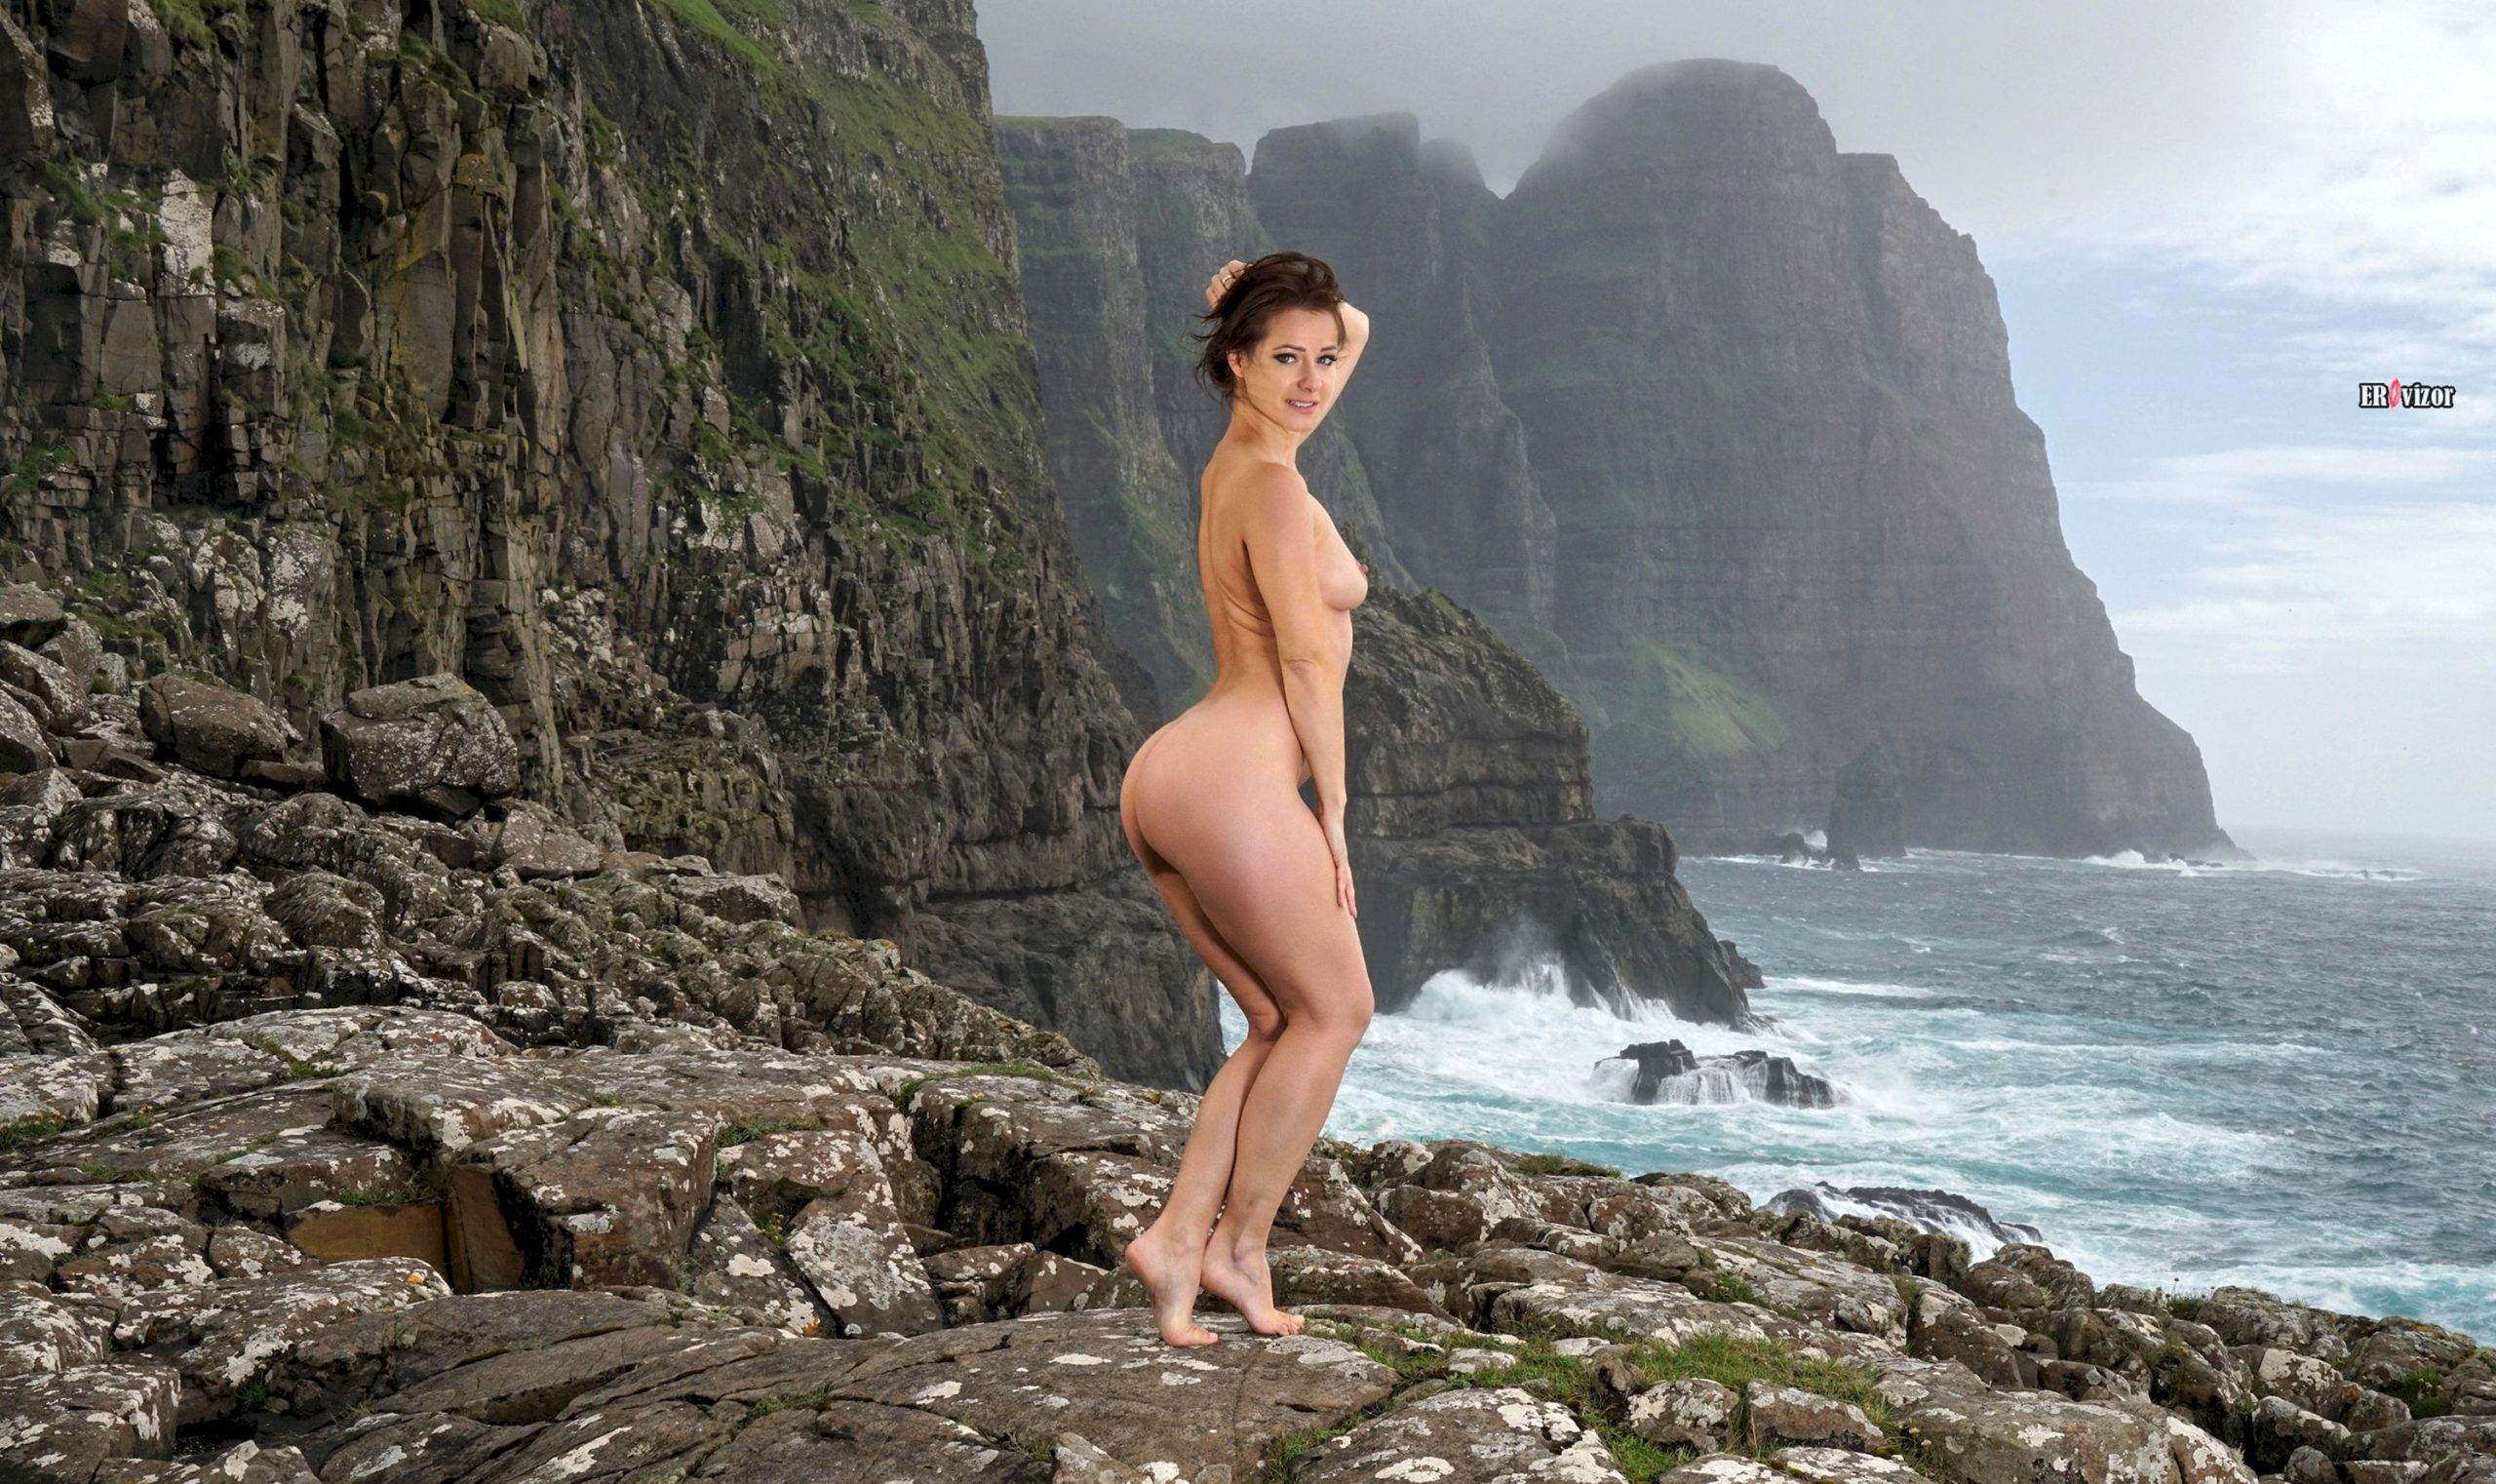 Melisa-Mendiny-with-Open-Pussy-22